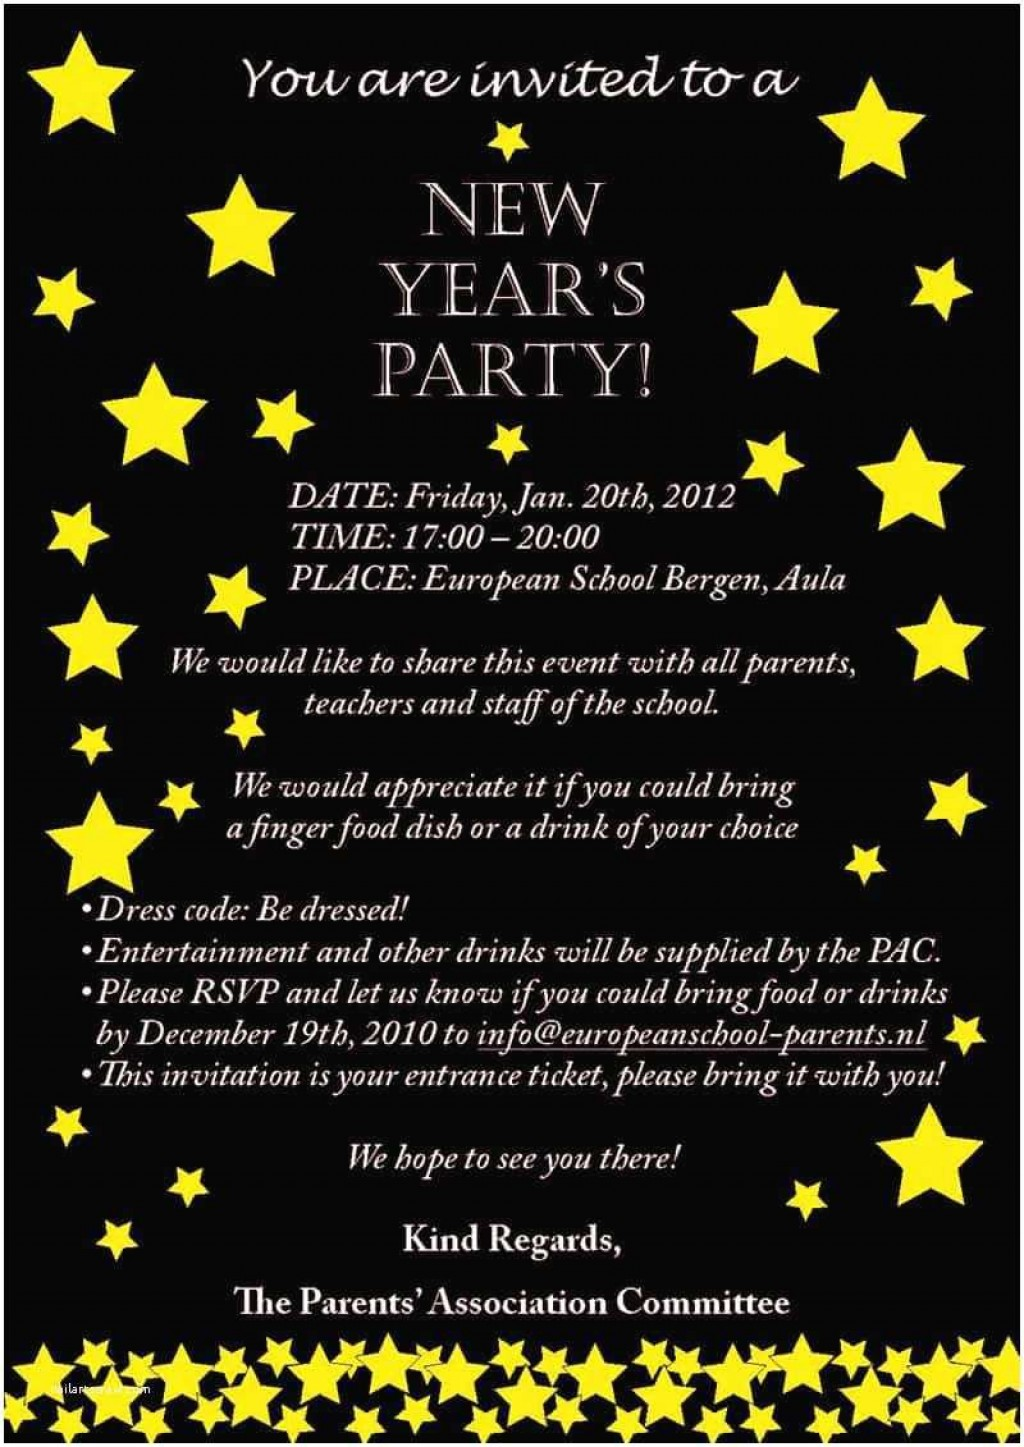 007 Unusual New Year Eve Invitation Template Highest Clarity  Party Free WordLarge